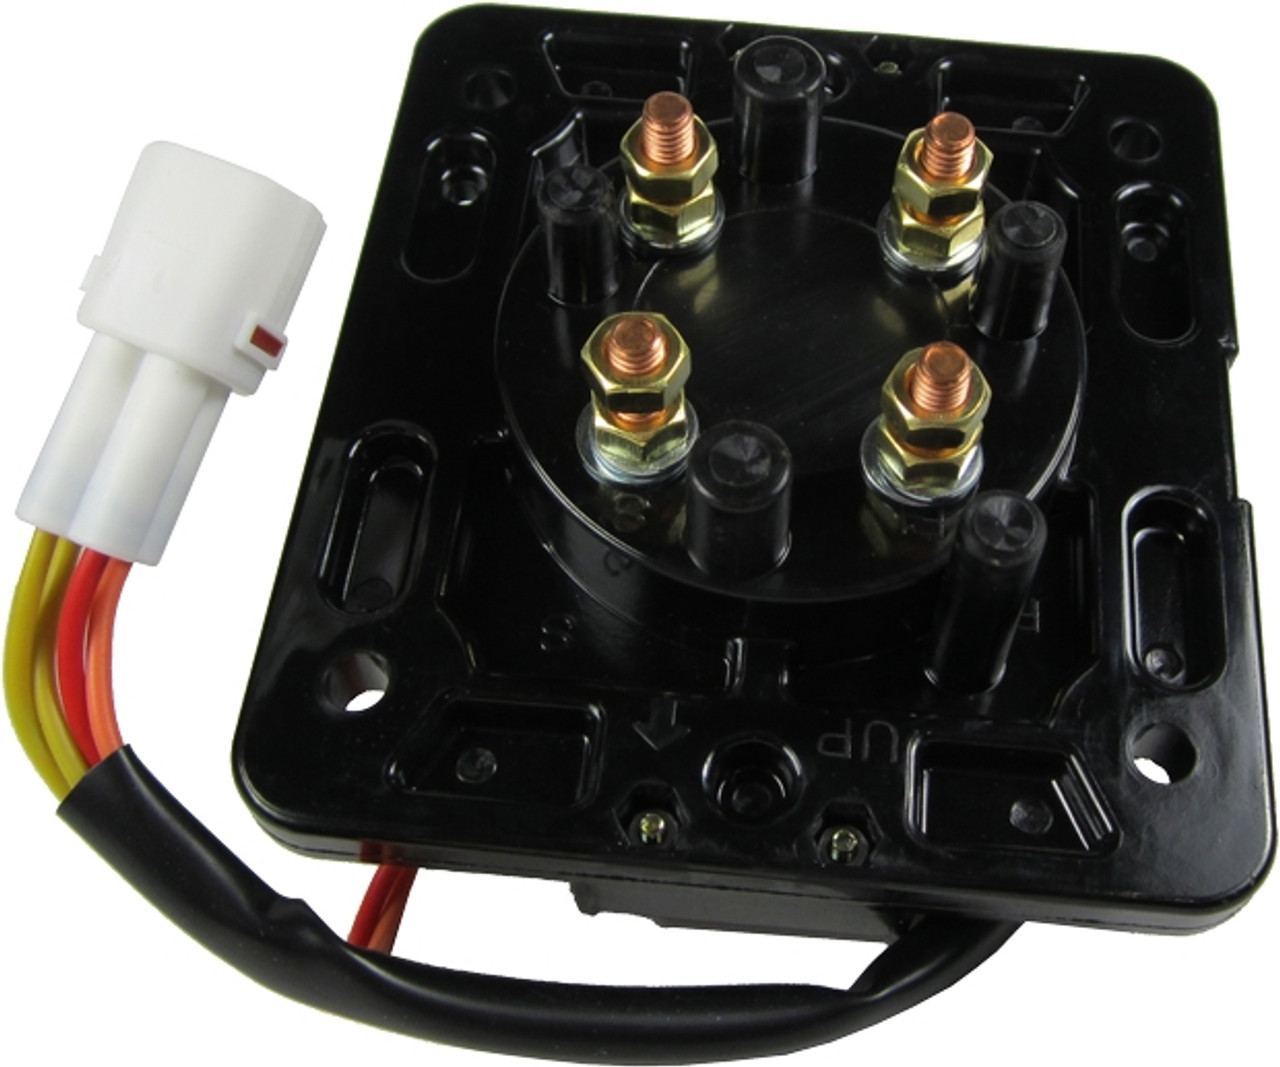 Yamaha G14, G16 36 Volt Forward and Reverse Switch embly on